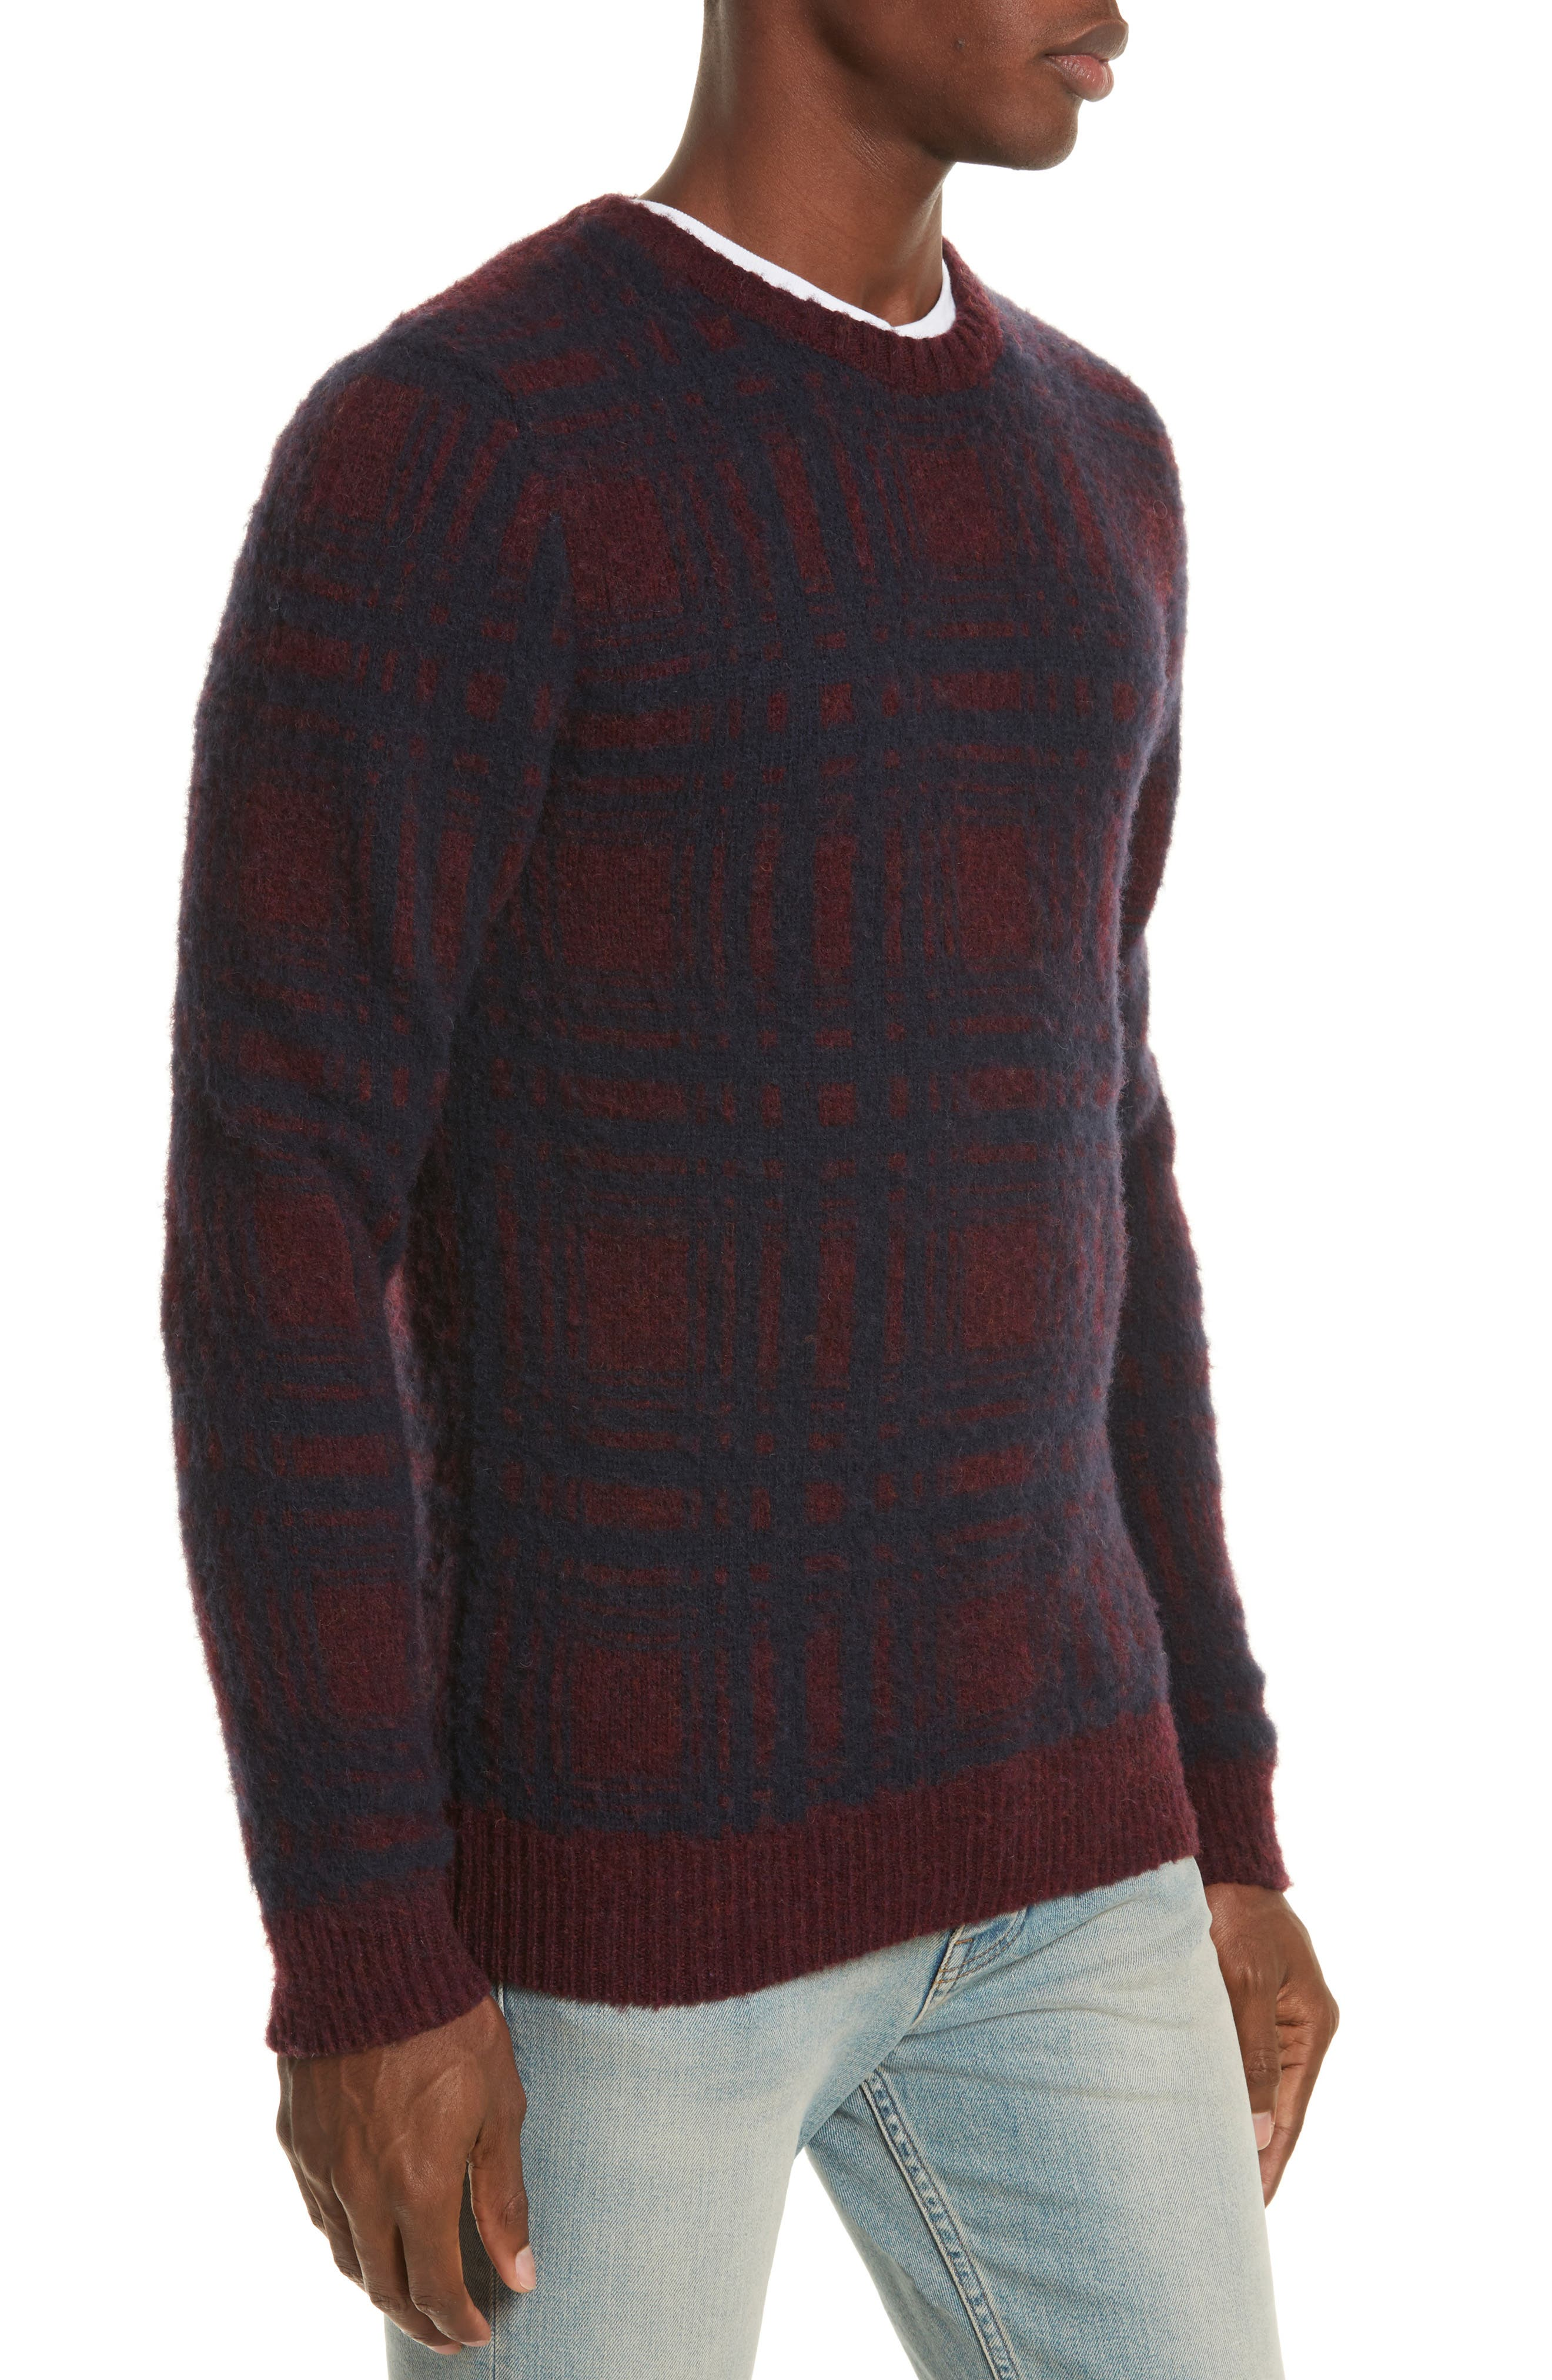 Sam Intarsia Check Wool Sweater,                             Alternate thumbnail 3, color,                             606